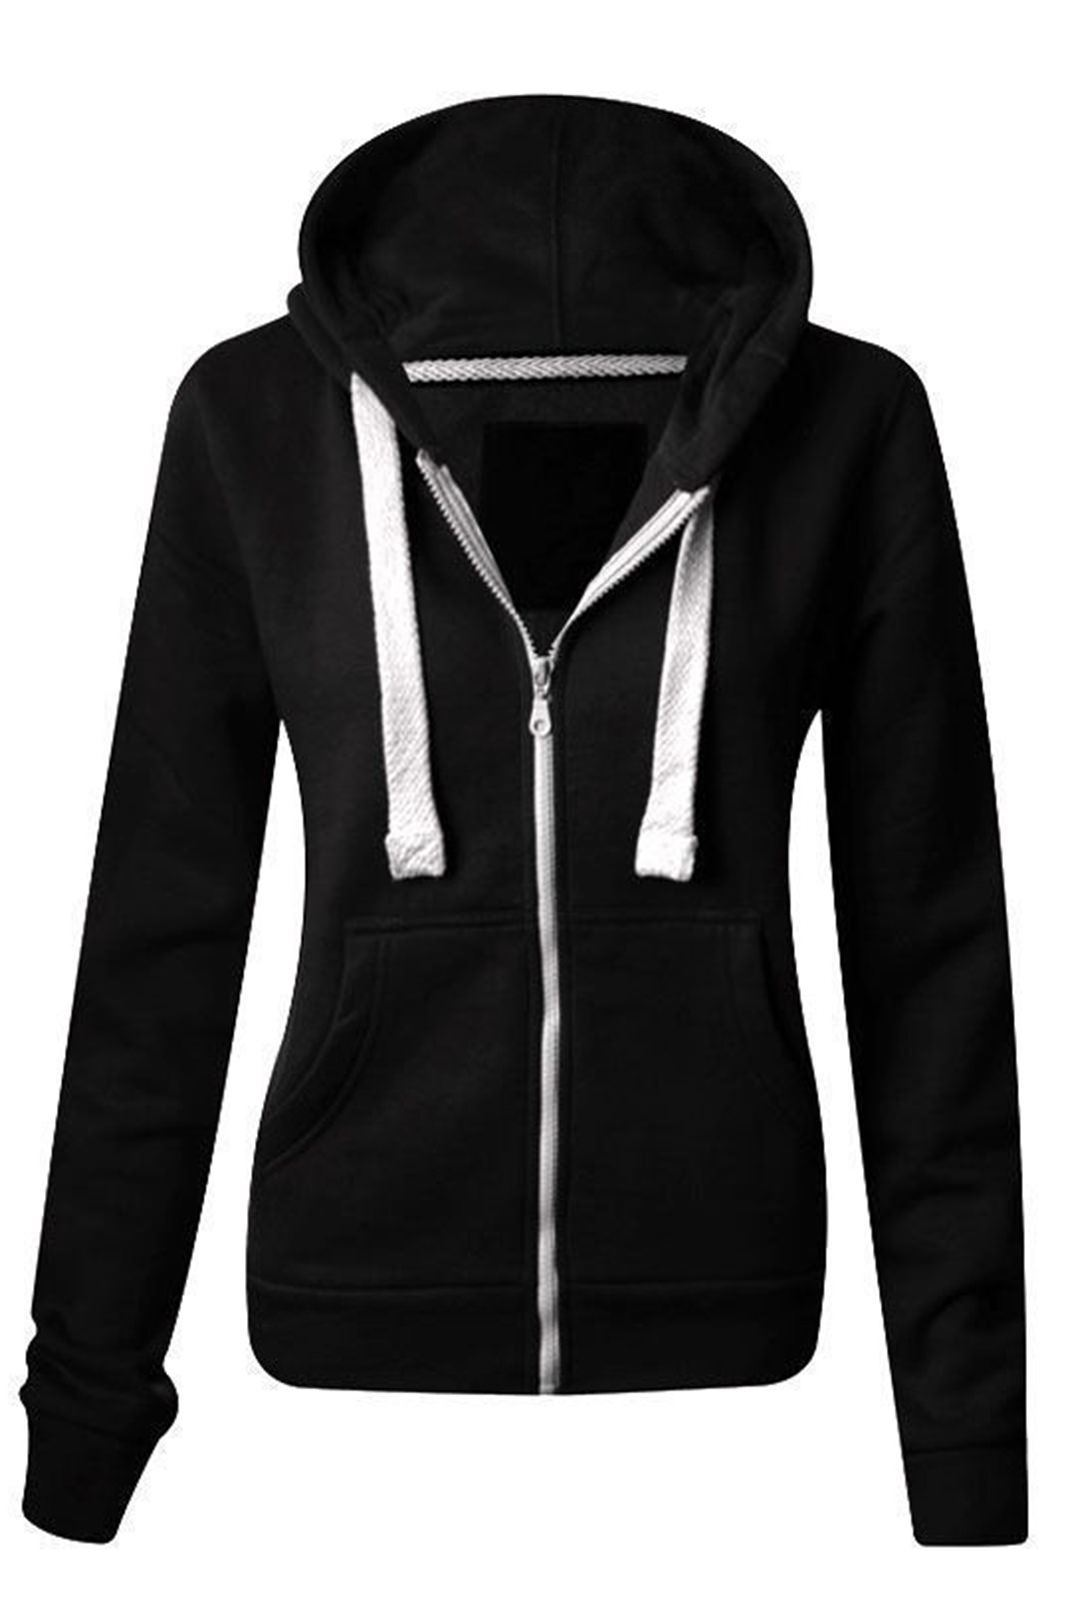 Full Zip Up Hoodie. Sweatpants. Keep your sweatshirt or pair of sweatpants plain and simple, or, perhaps, choose to embroider it for yourself, your business, your classmates, or your teammates. These can serve as not only comfortable and useful articles of .